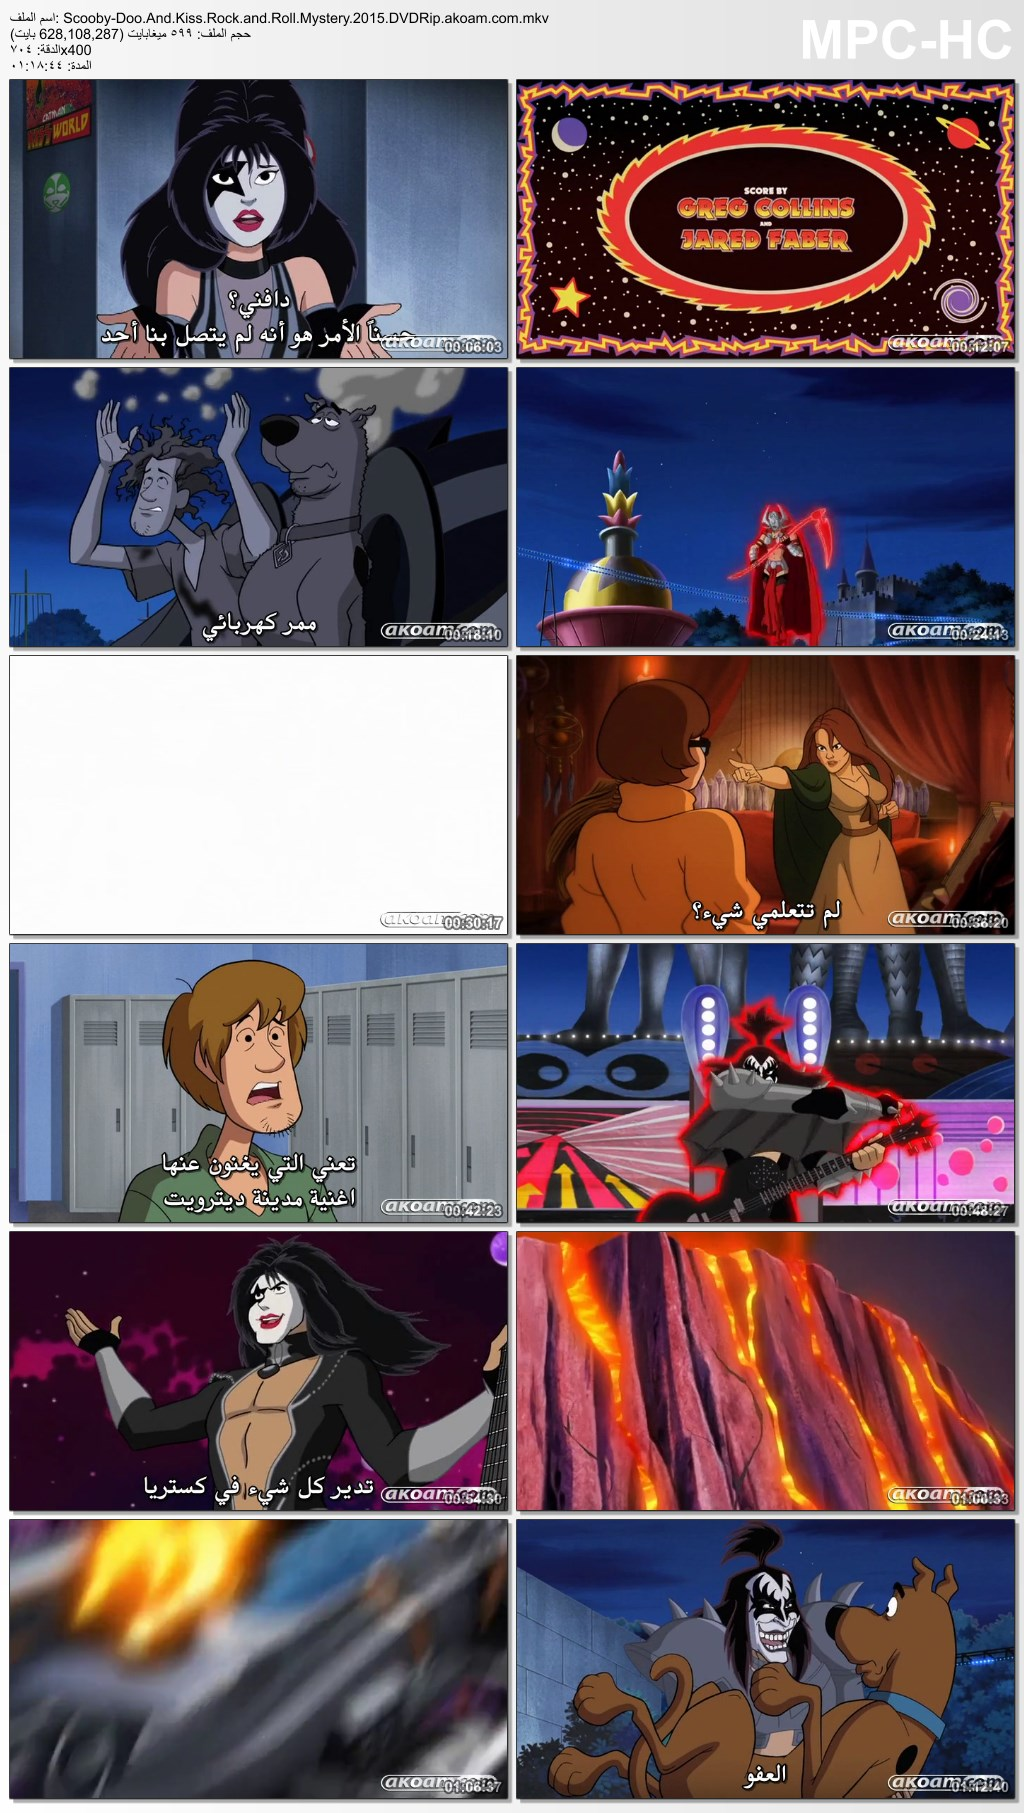 Rock and Roll Mystery,Rock and Roll Mystery 2015,Scooby-Doo! And Kiss: Rock and Roll Mystery (2015),Scooby-Doo! And Kiss,Scooby-Doo! And Kiss: Rock and Roll Mystery,الانمي,الانيميشن,العائلي